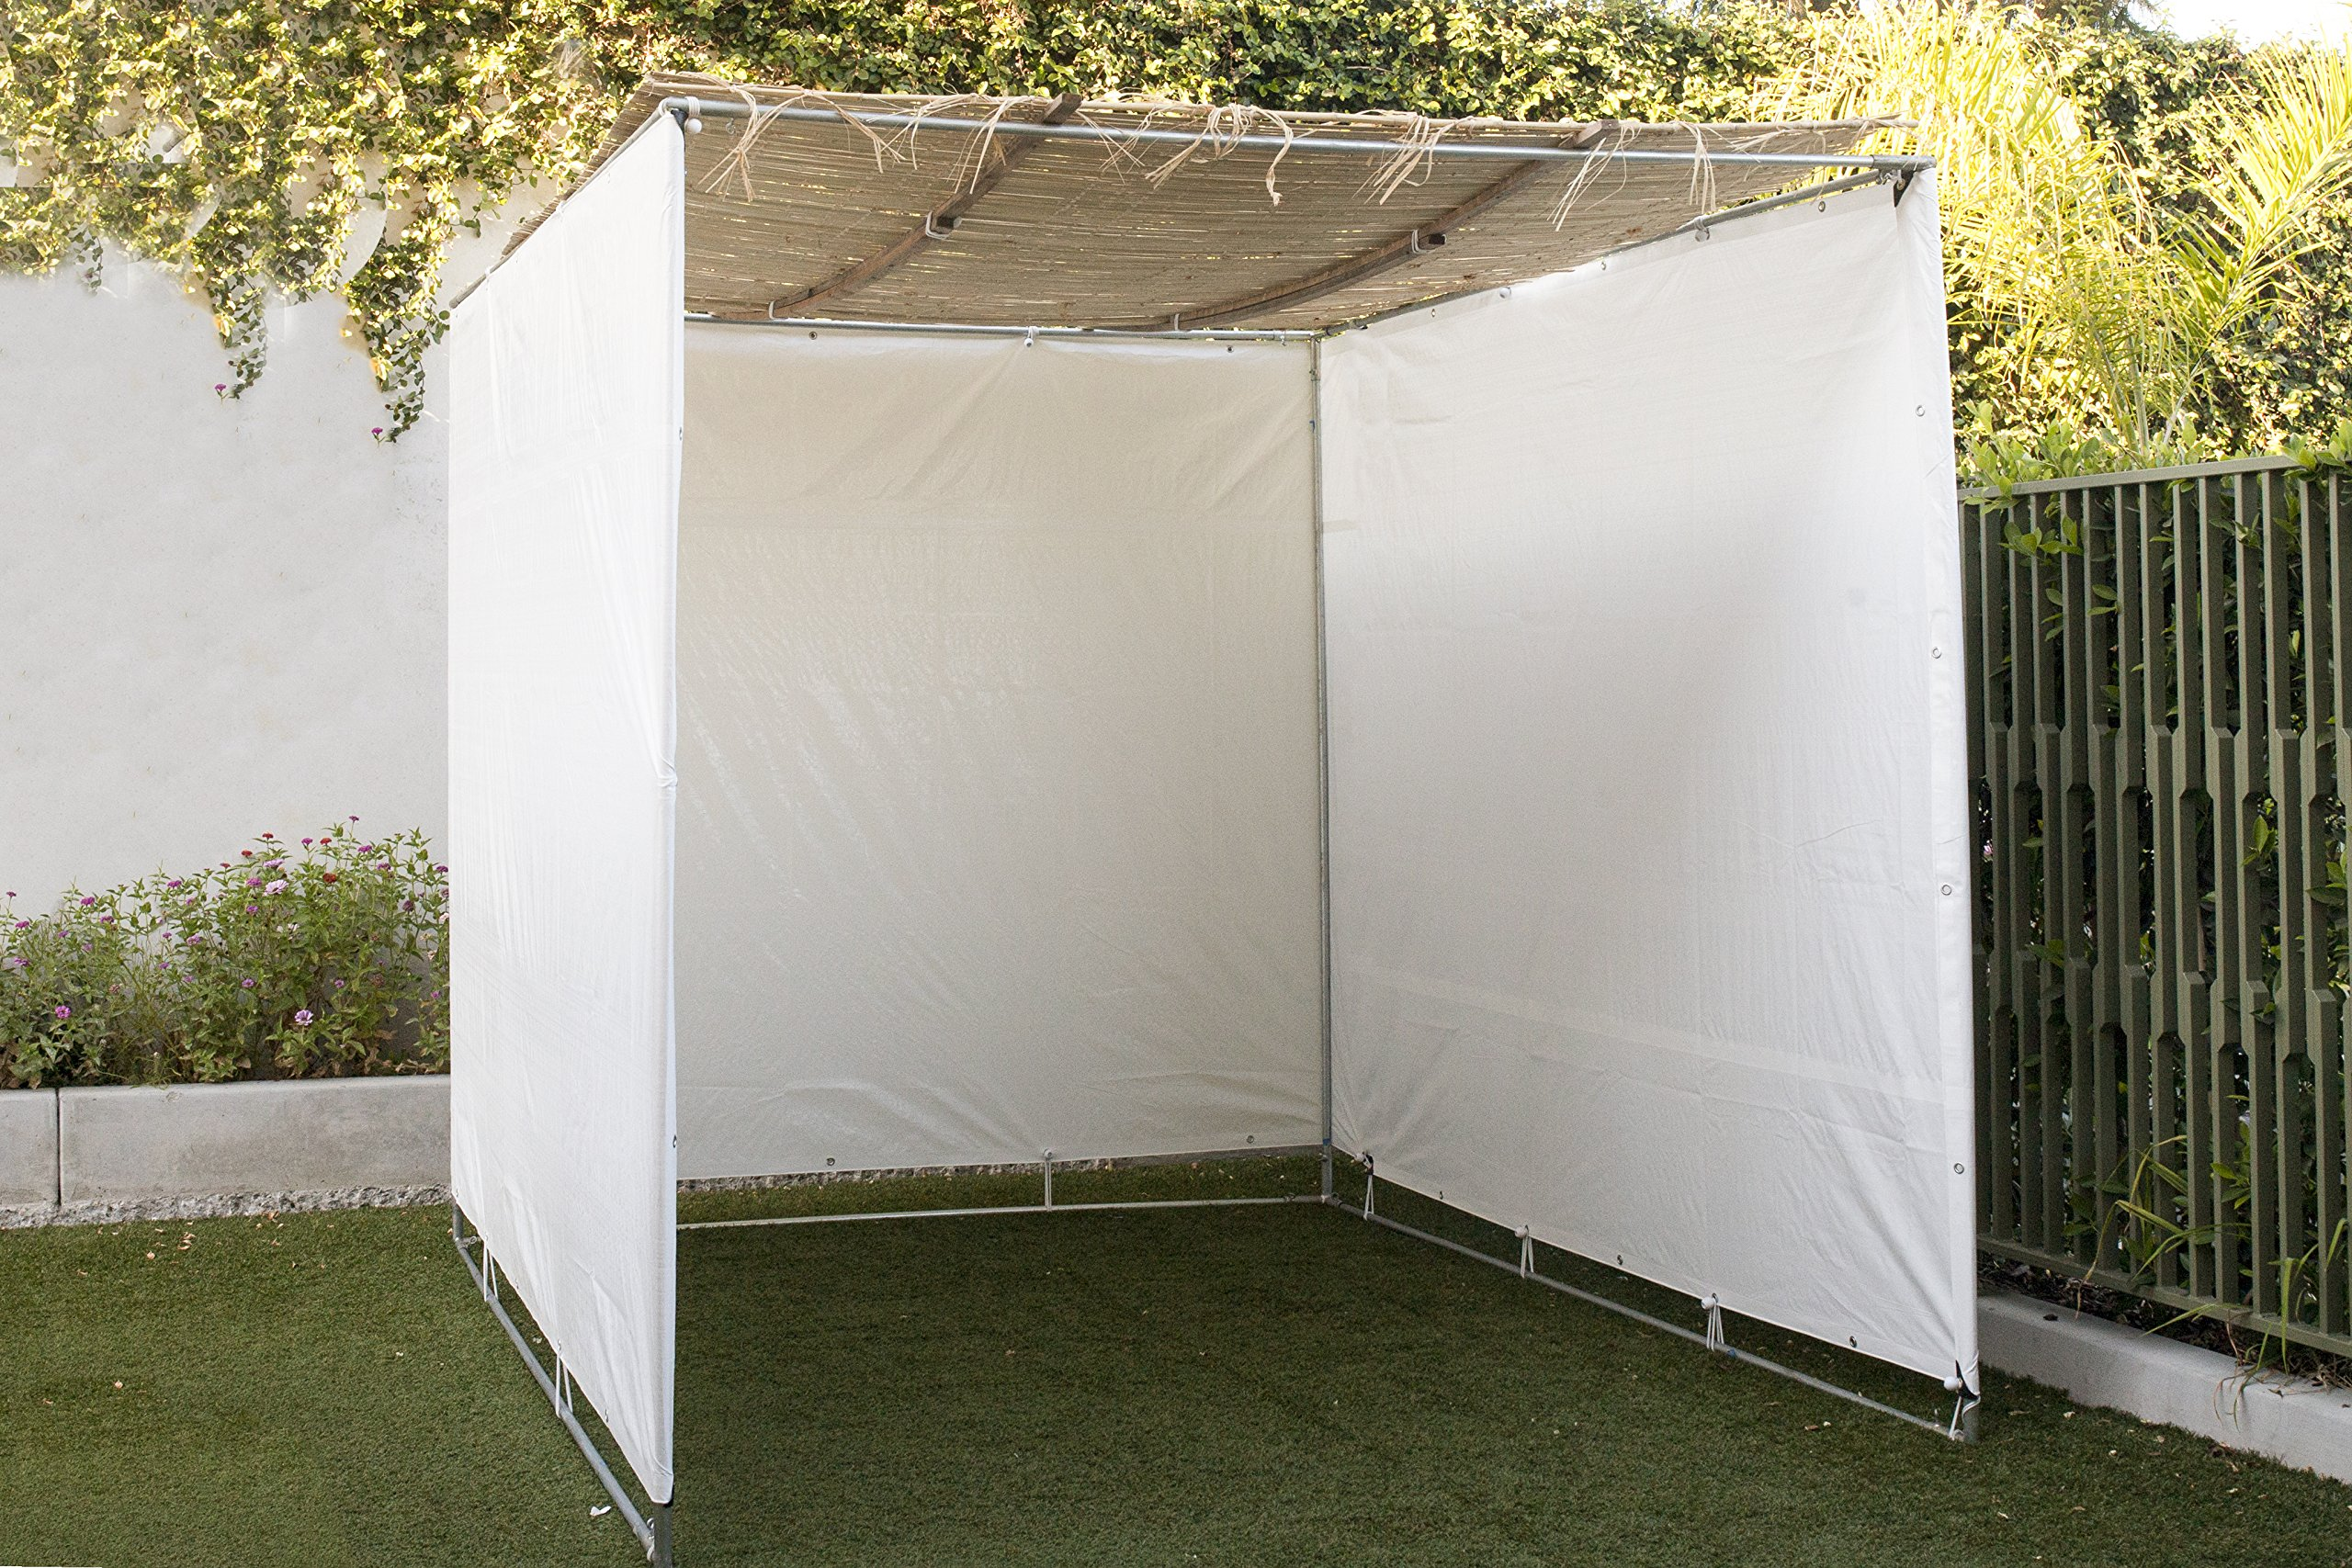 TheSukkahSpot - Easy to Build Sukkah Succah Sukah - Certified Kosher - (10X15) by TheSukkahSpot